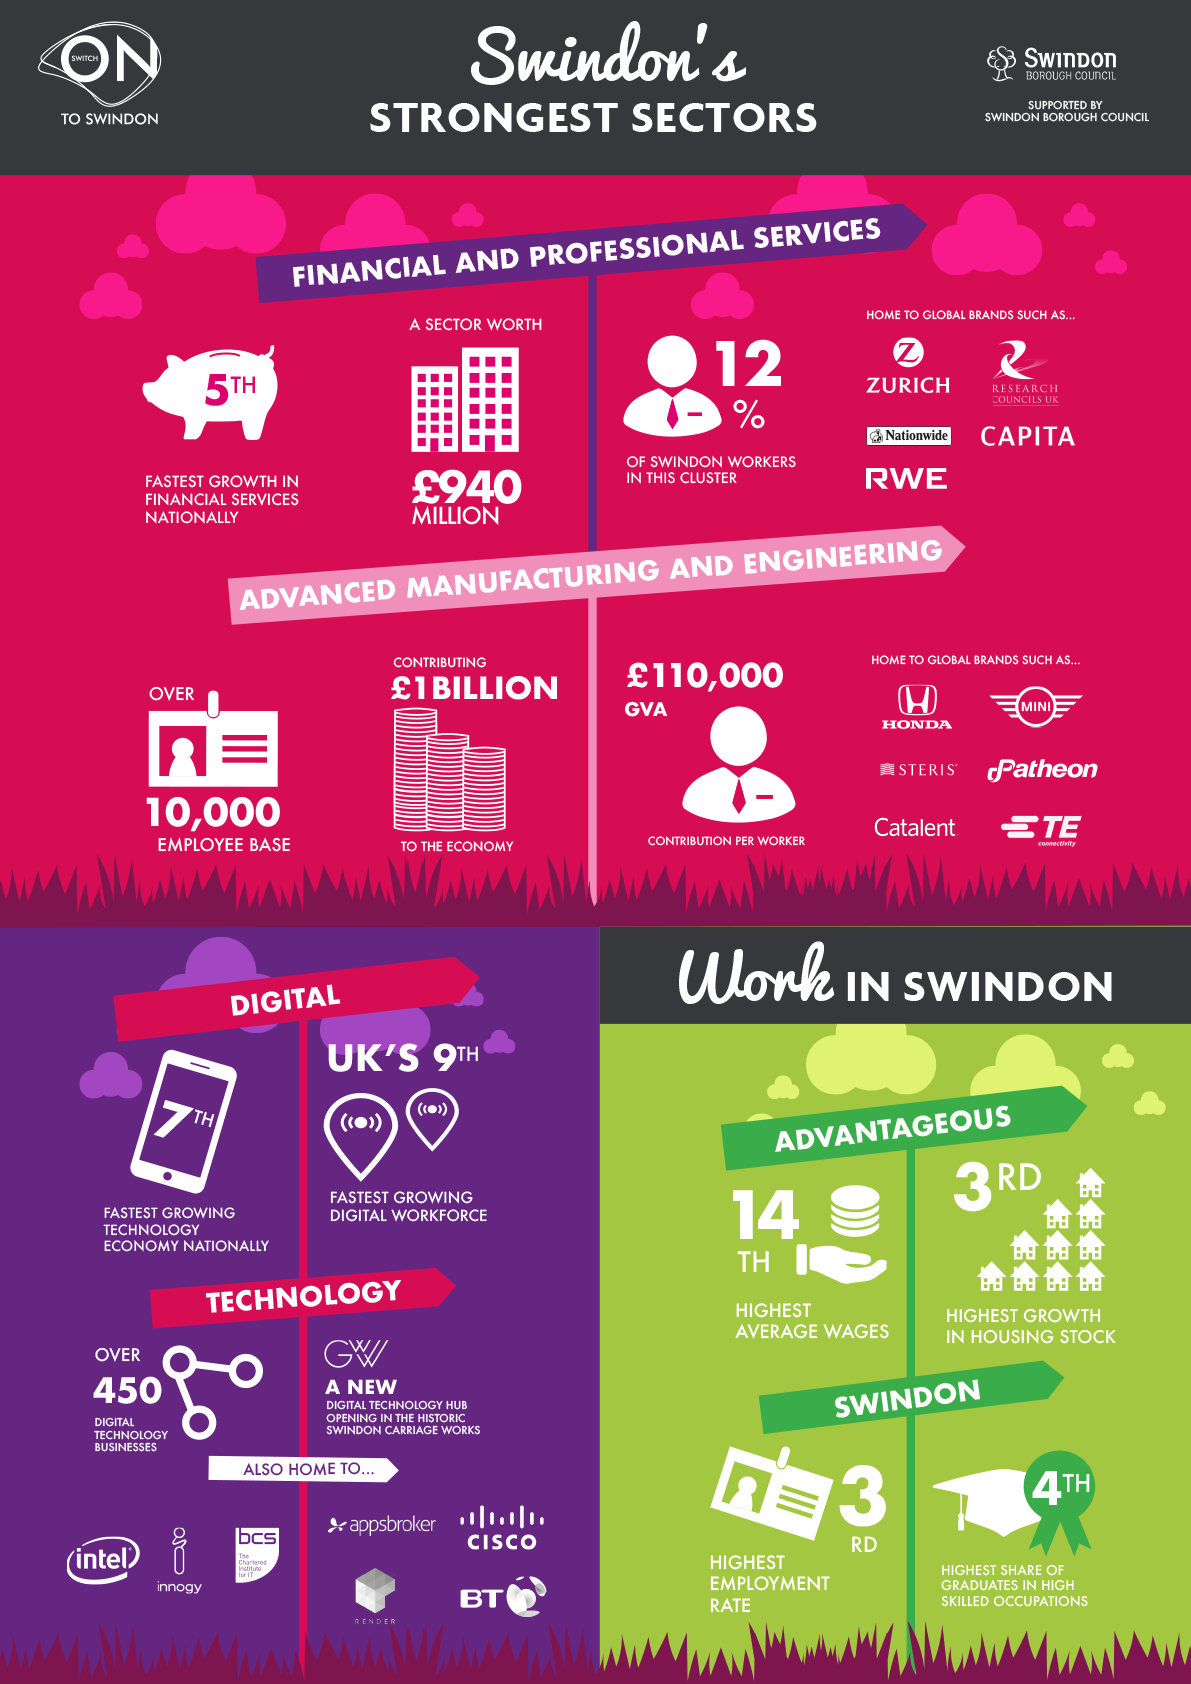 Invest in Swindon infographic